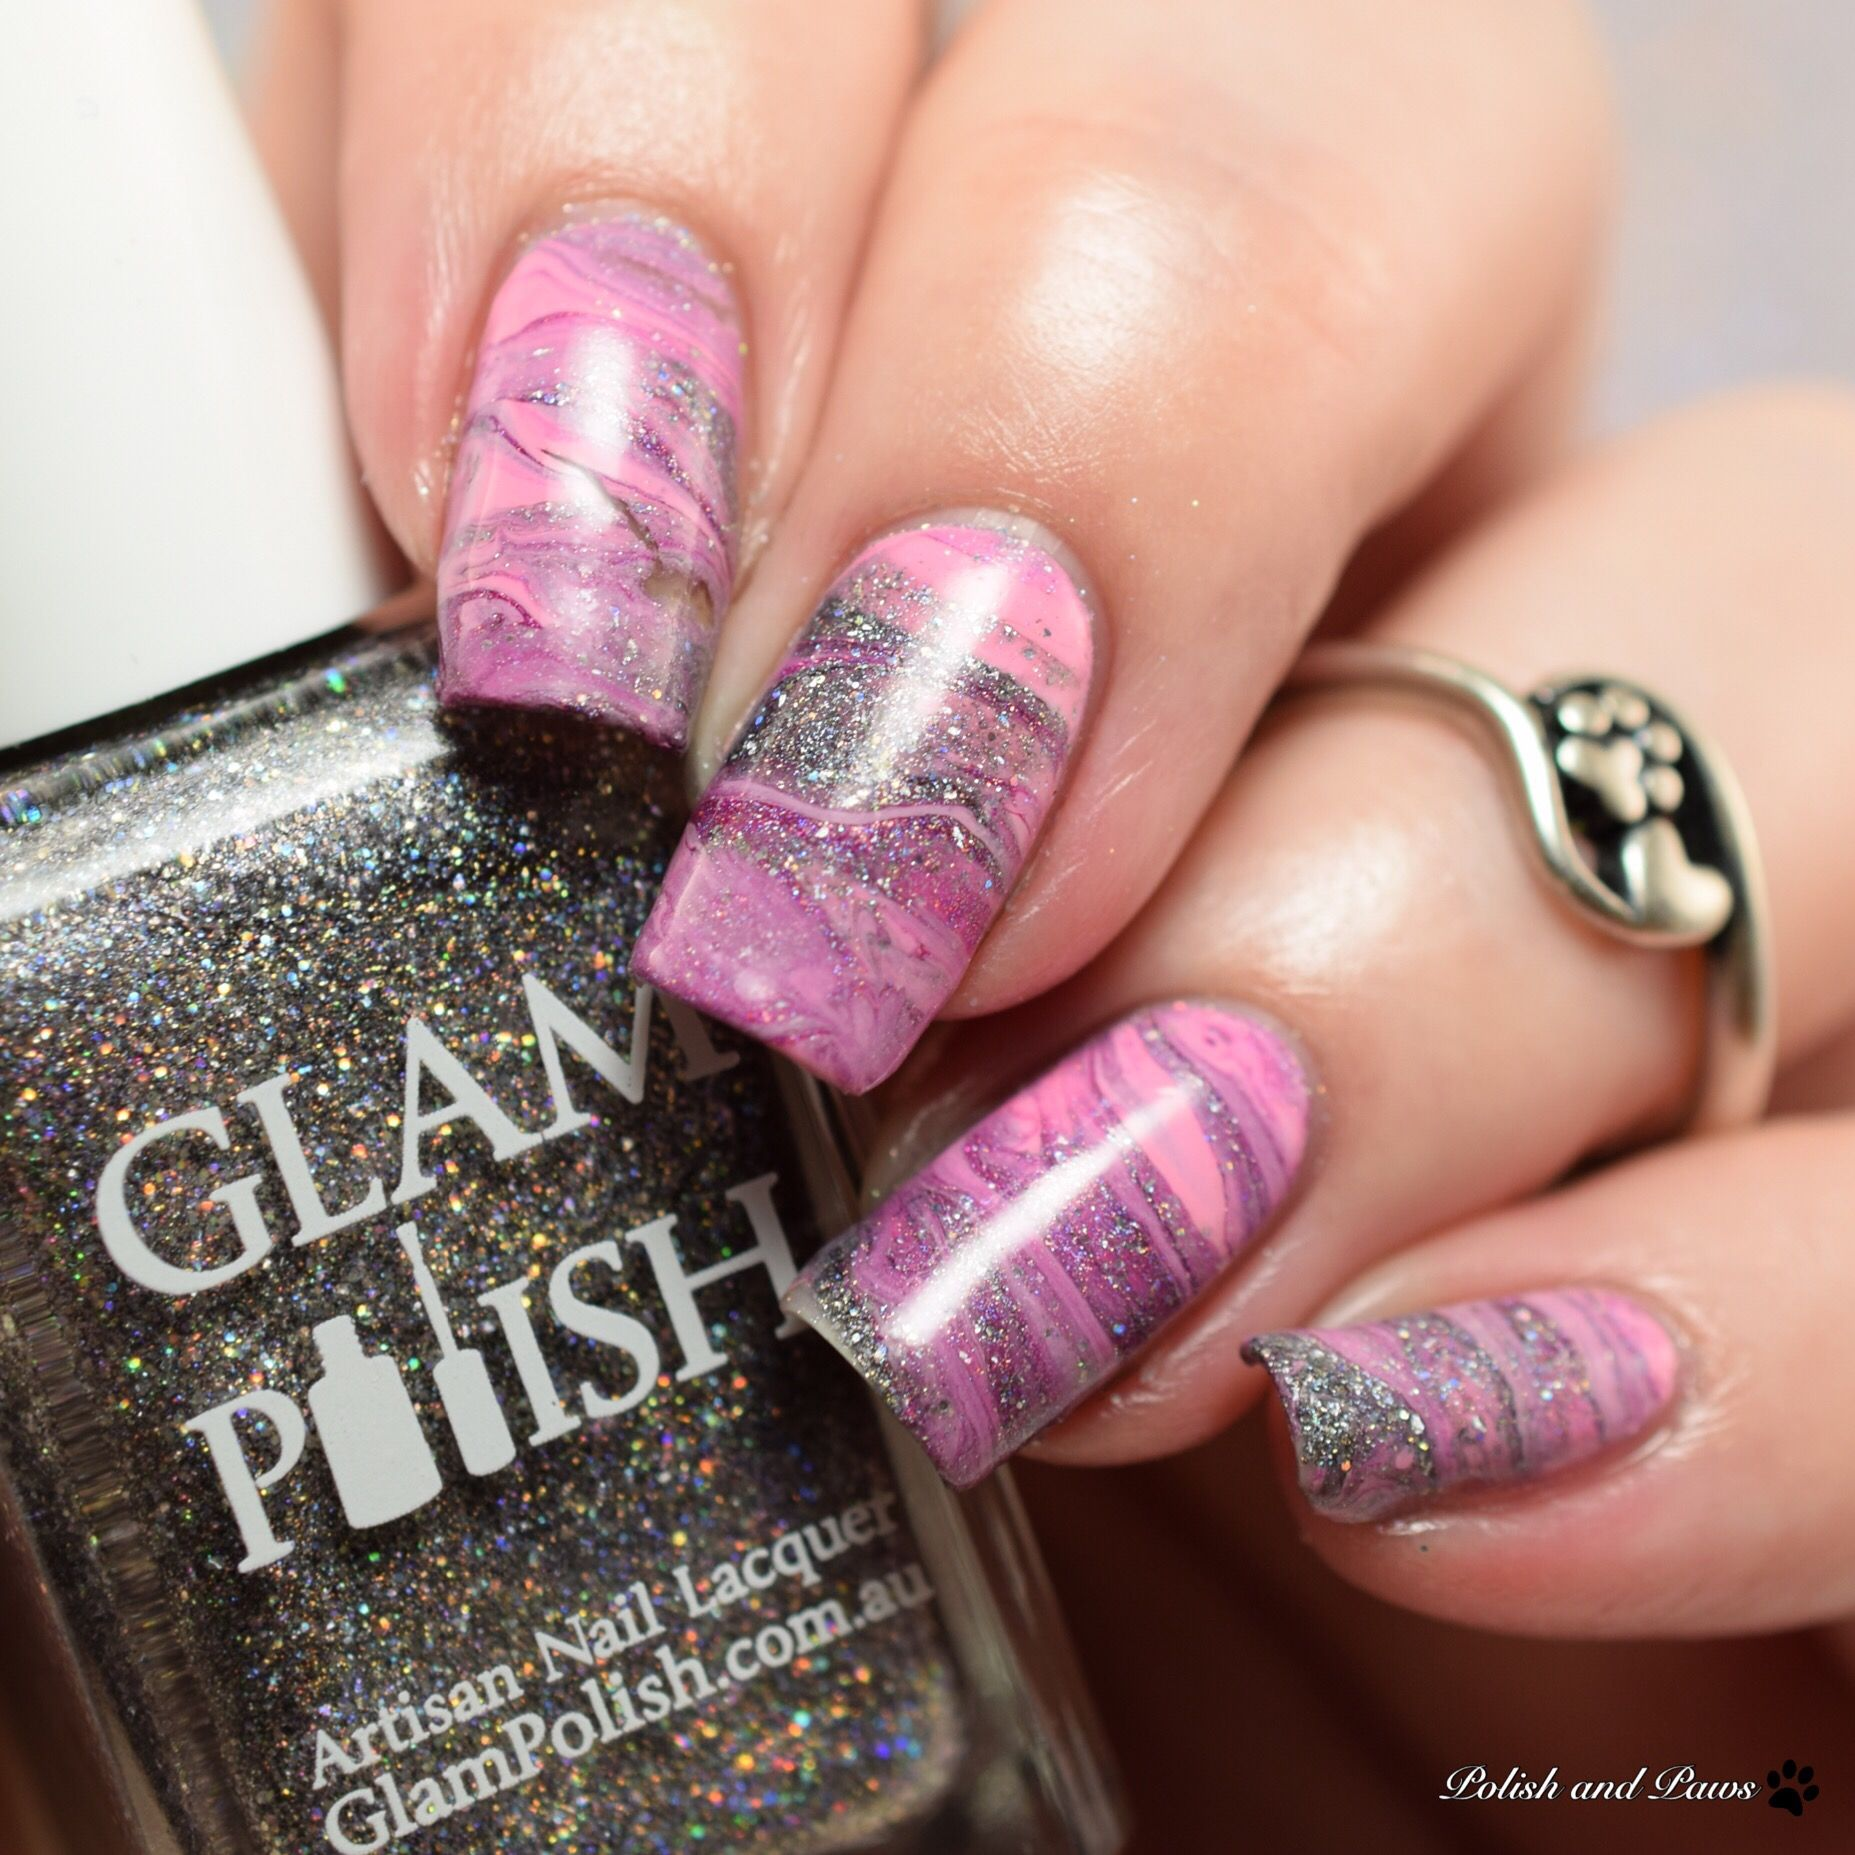 Drag Marble Nail Art Design Nails Pinterest Marble Nail Art